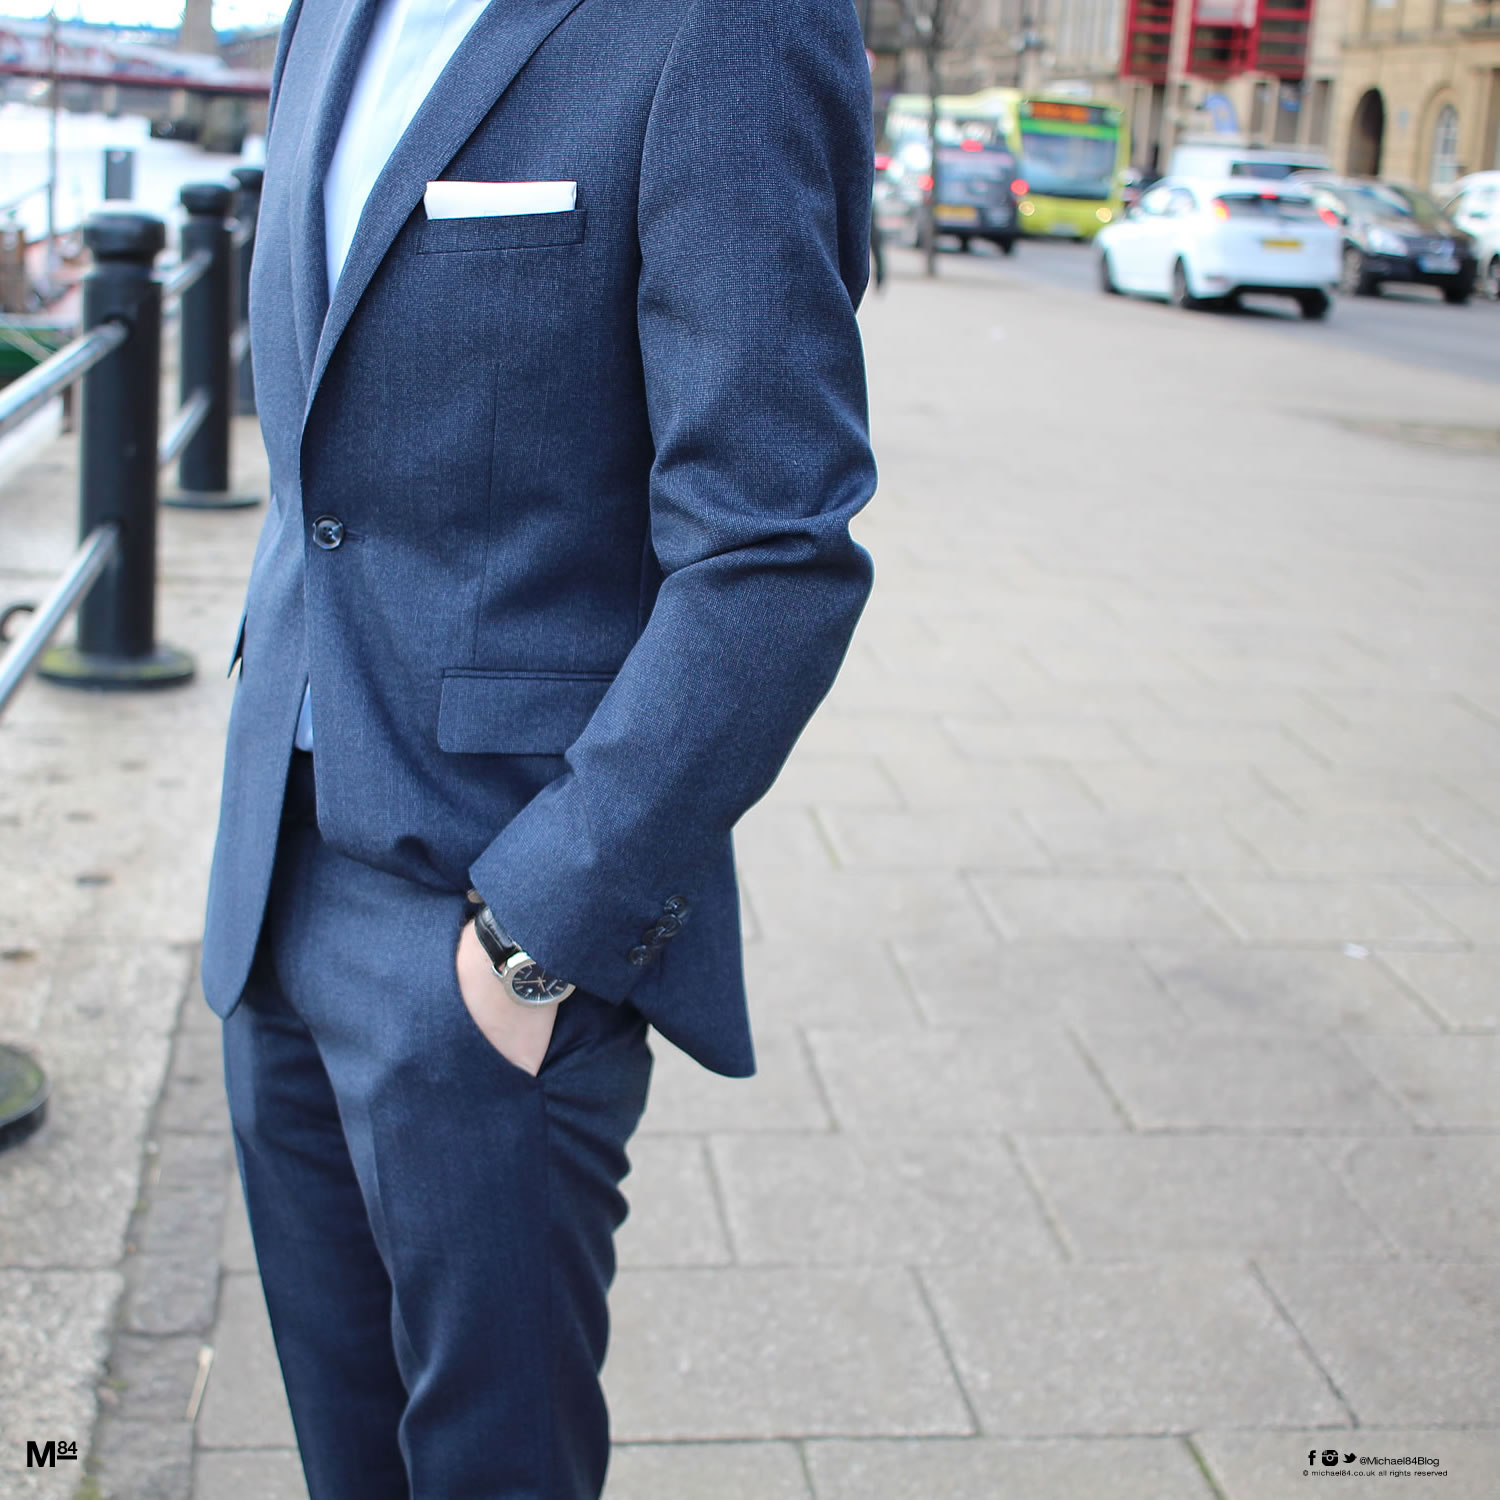 topman-suit-close-1-blog